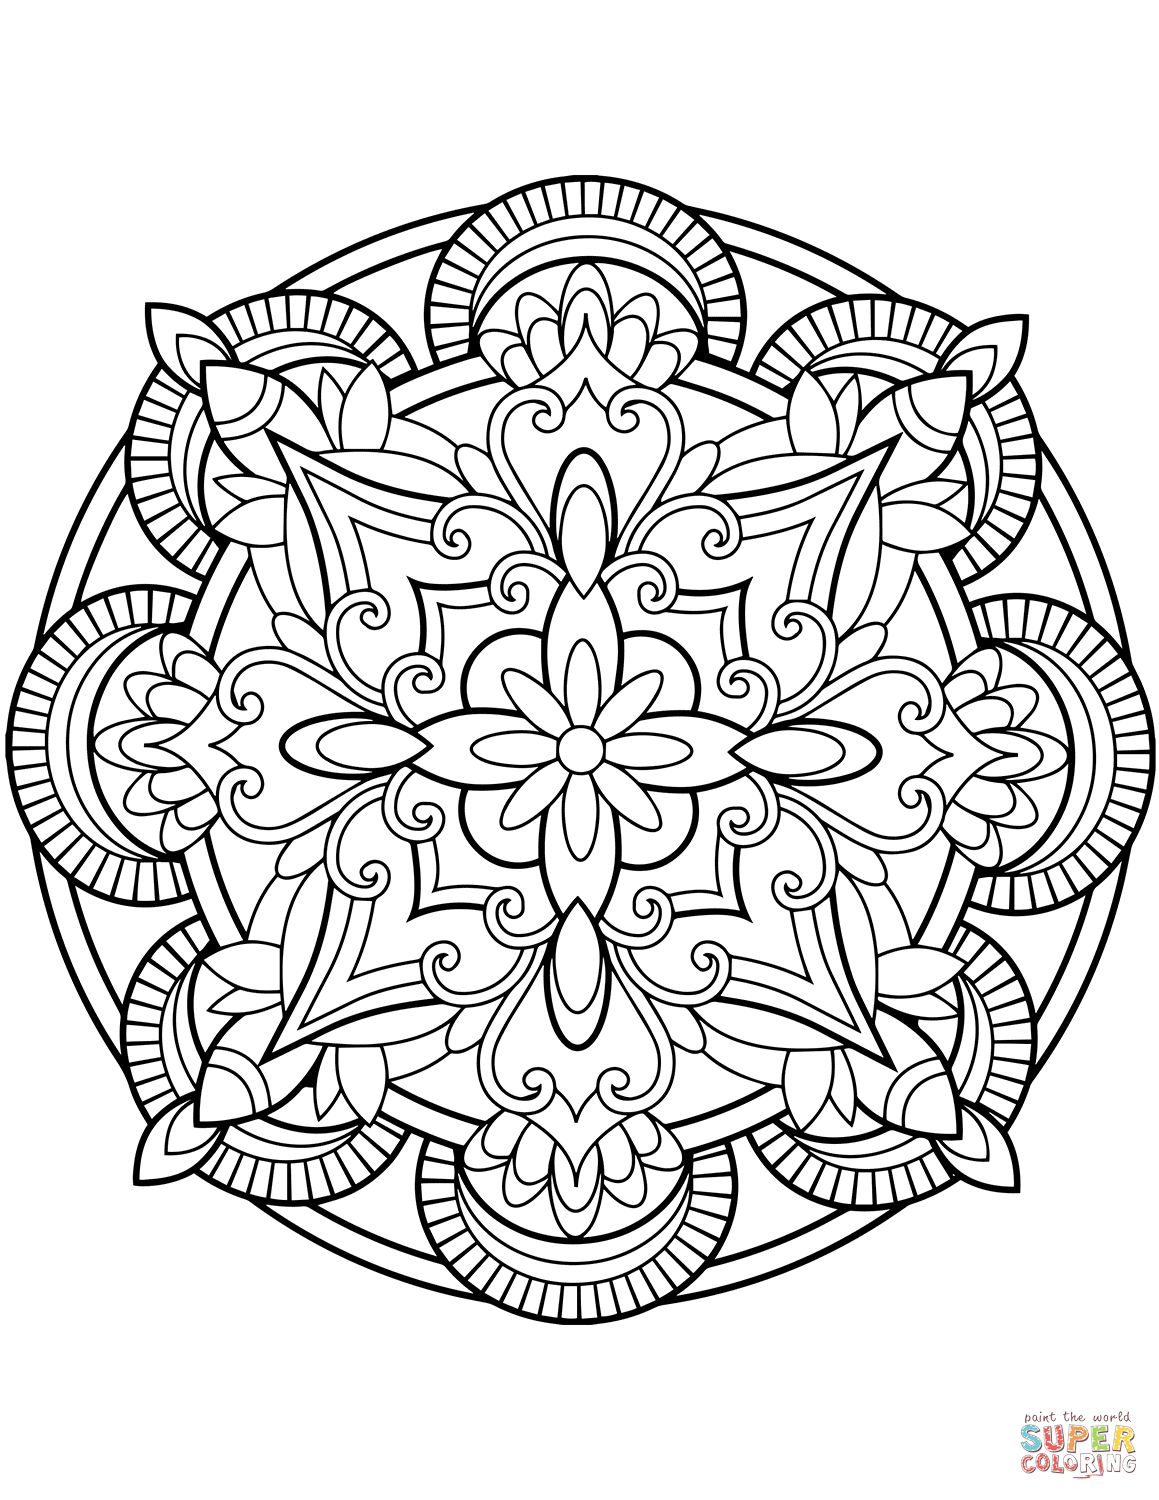 Flower Mandala Coloring Pages Free Coloring Pages Download   Xsibe ...